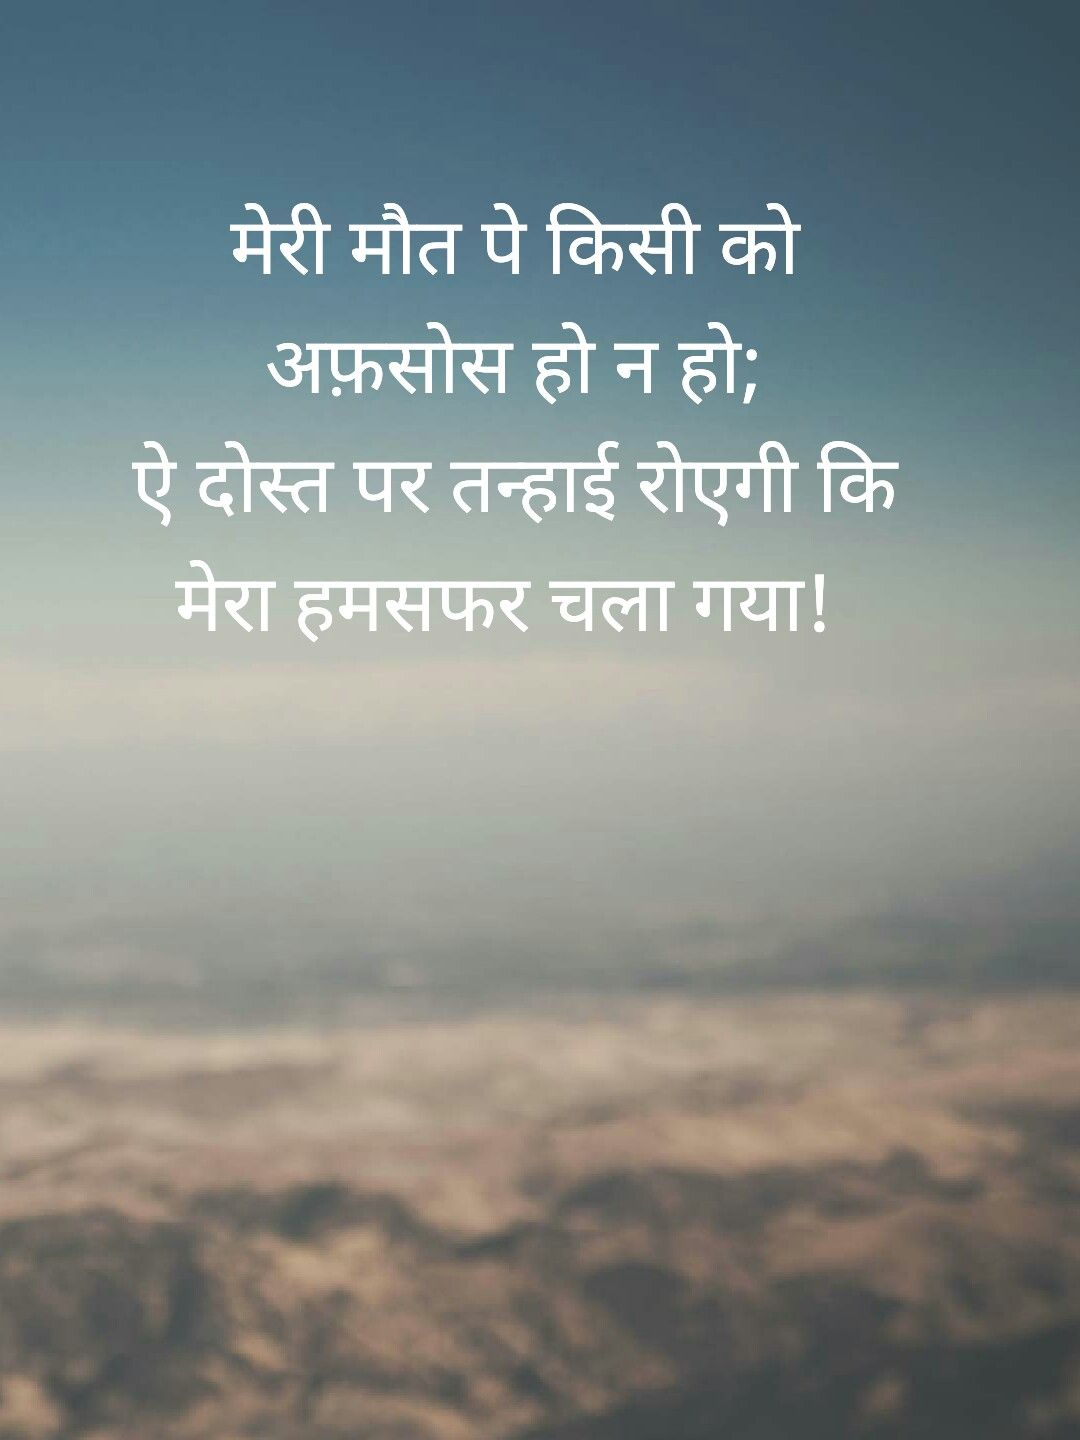 Hindi Shayari Loneliness Hindi Quotes Shayari हद